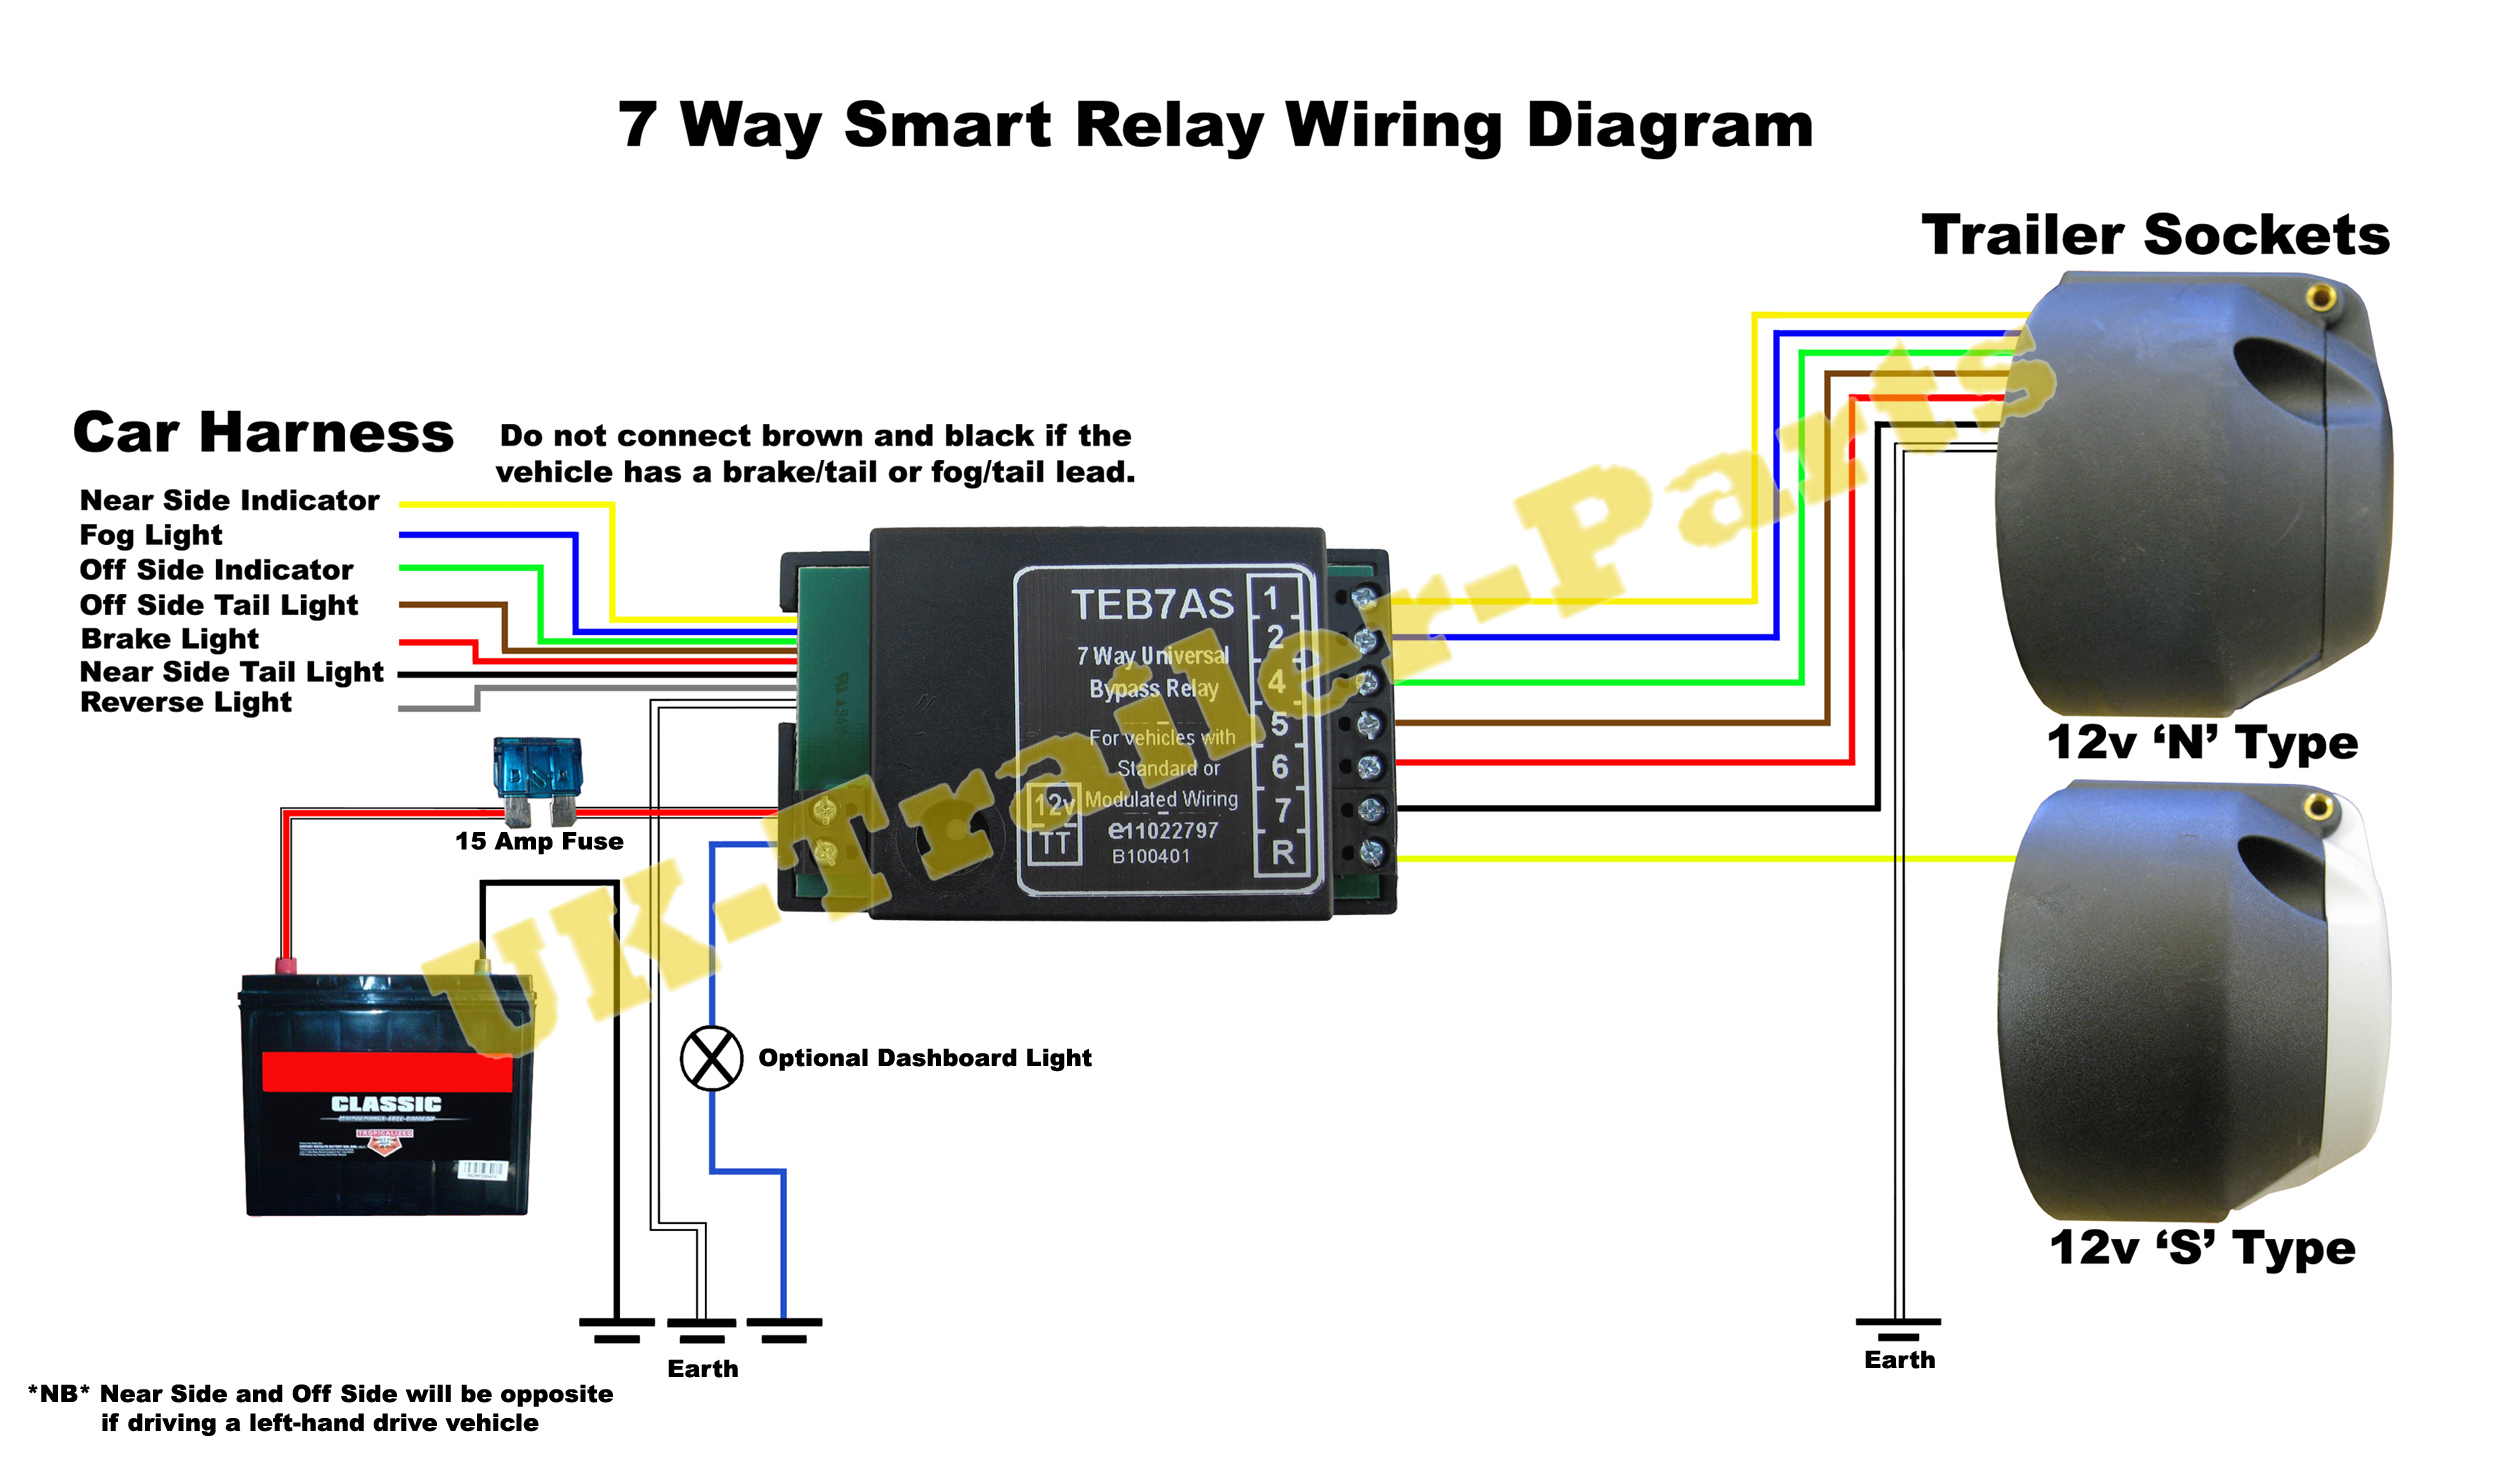 smart relay wiring diagram2 7 way universal bypass relay wiring diagram uk trailer parts volvo v70 towbar wiring diagram at fashall.co